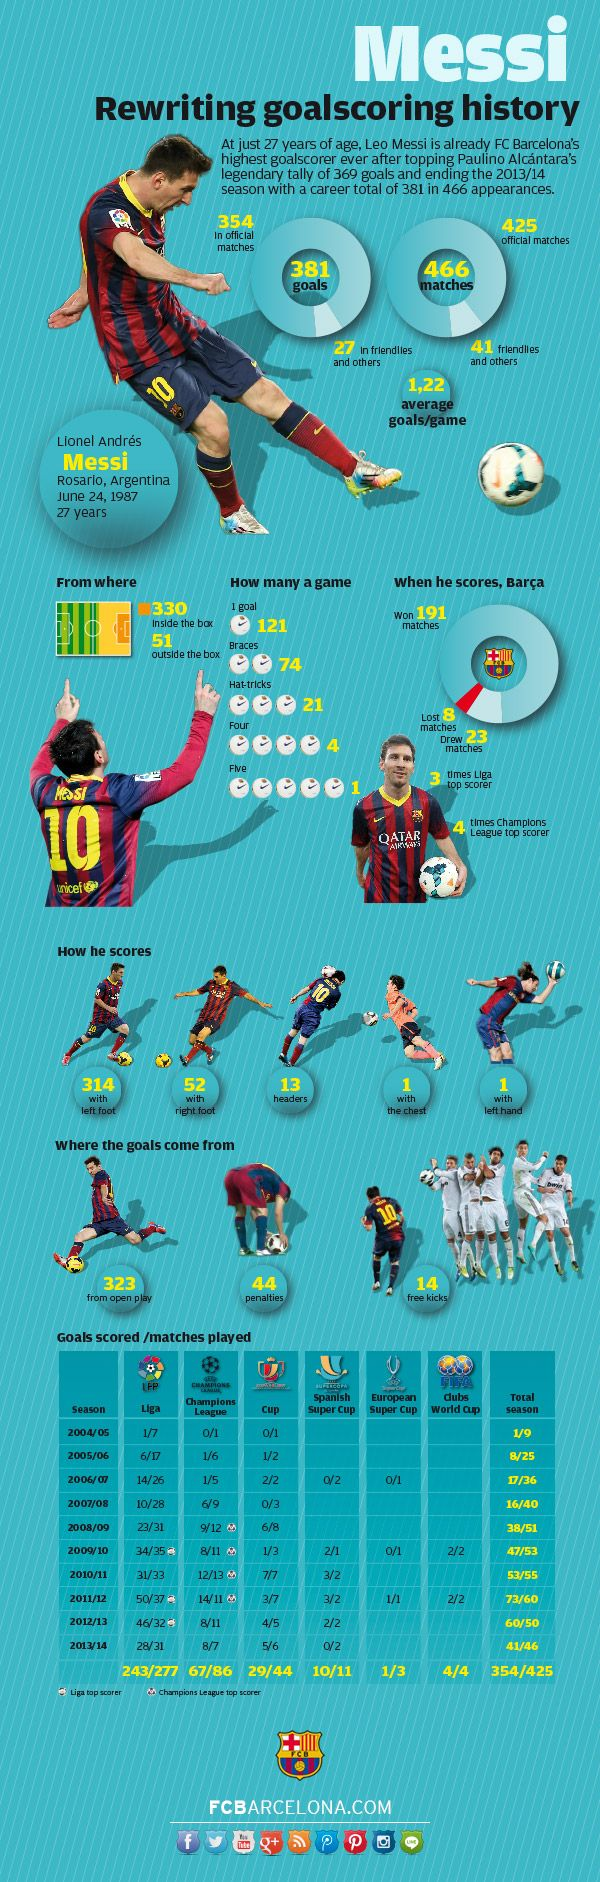 #Messi Messi's infographic: Rewriting goalscoring history #FCBarcelona